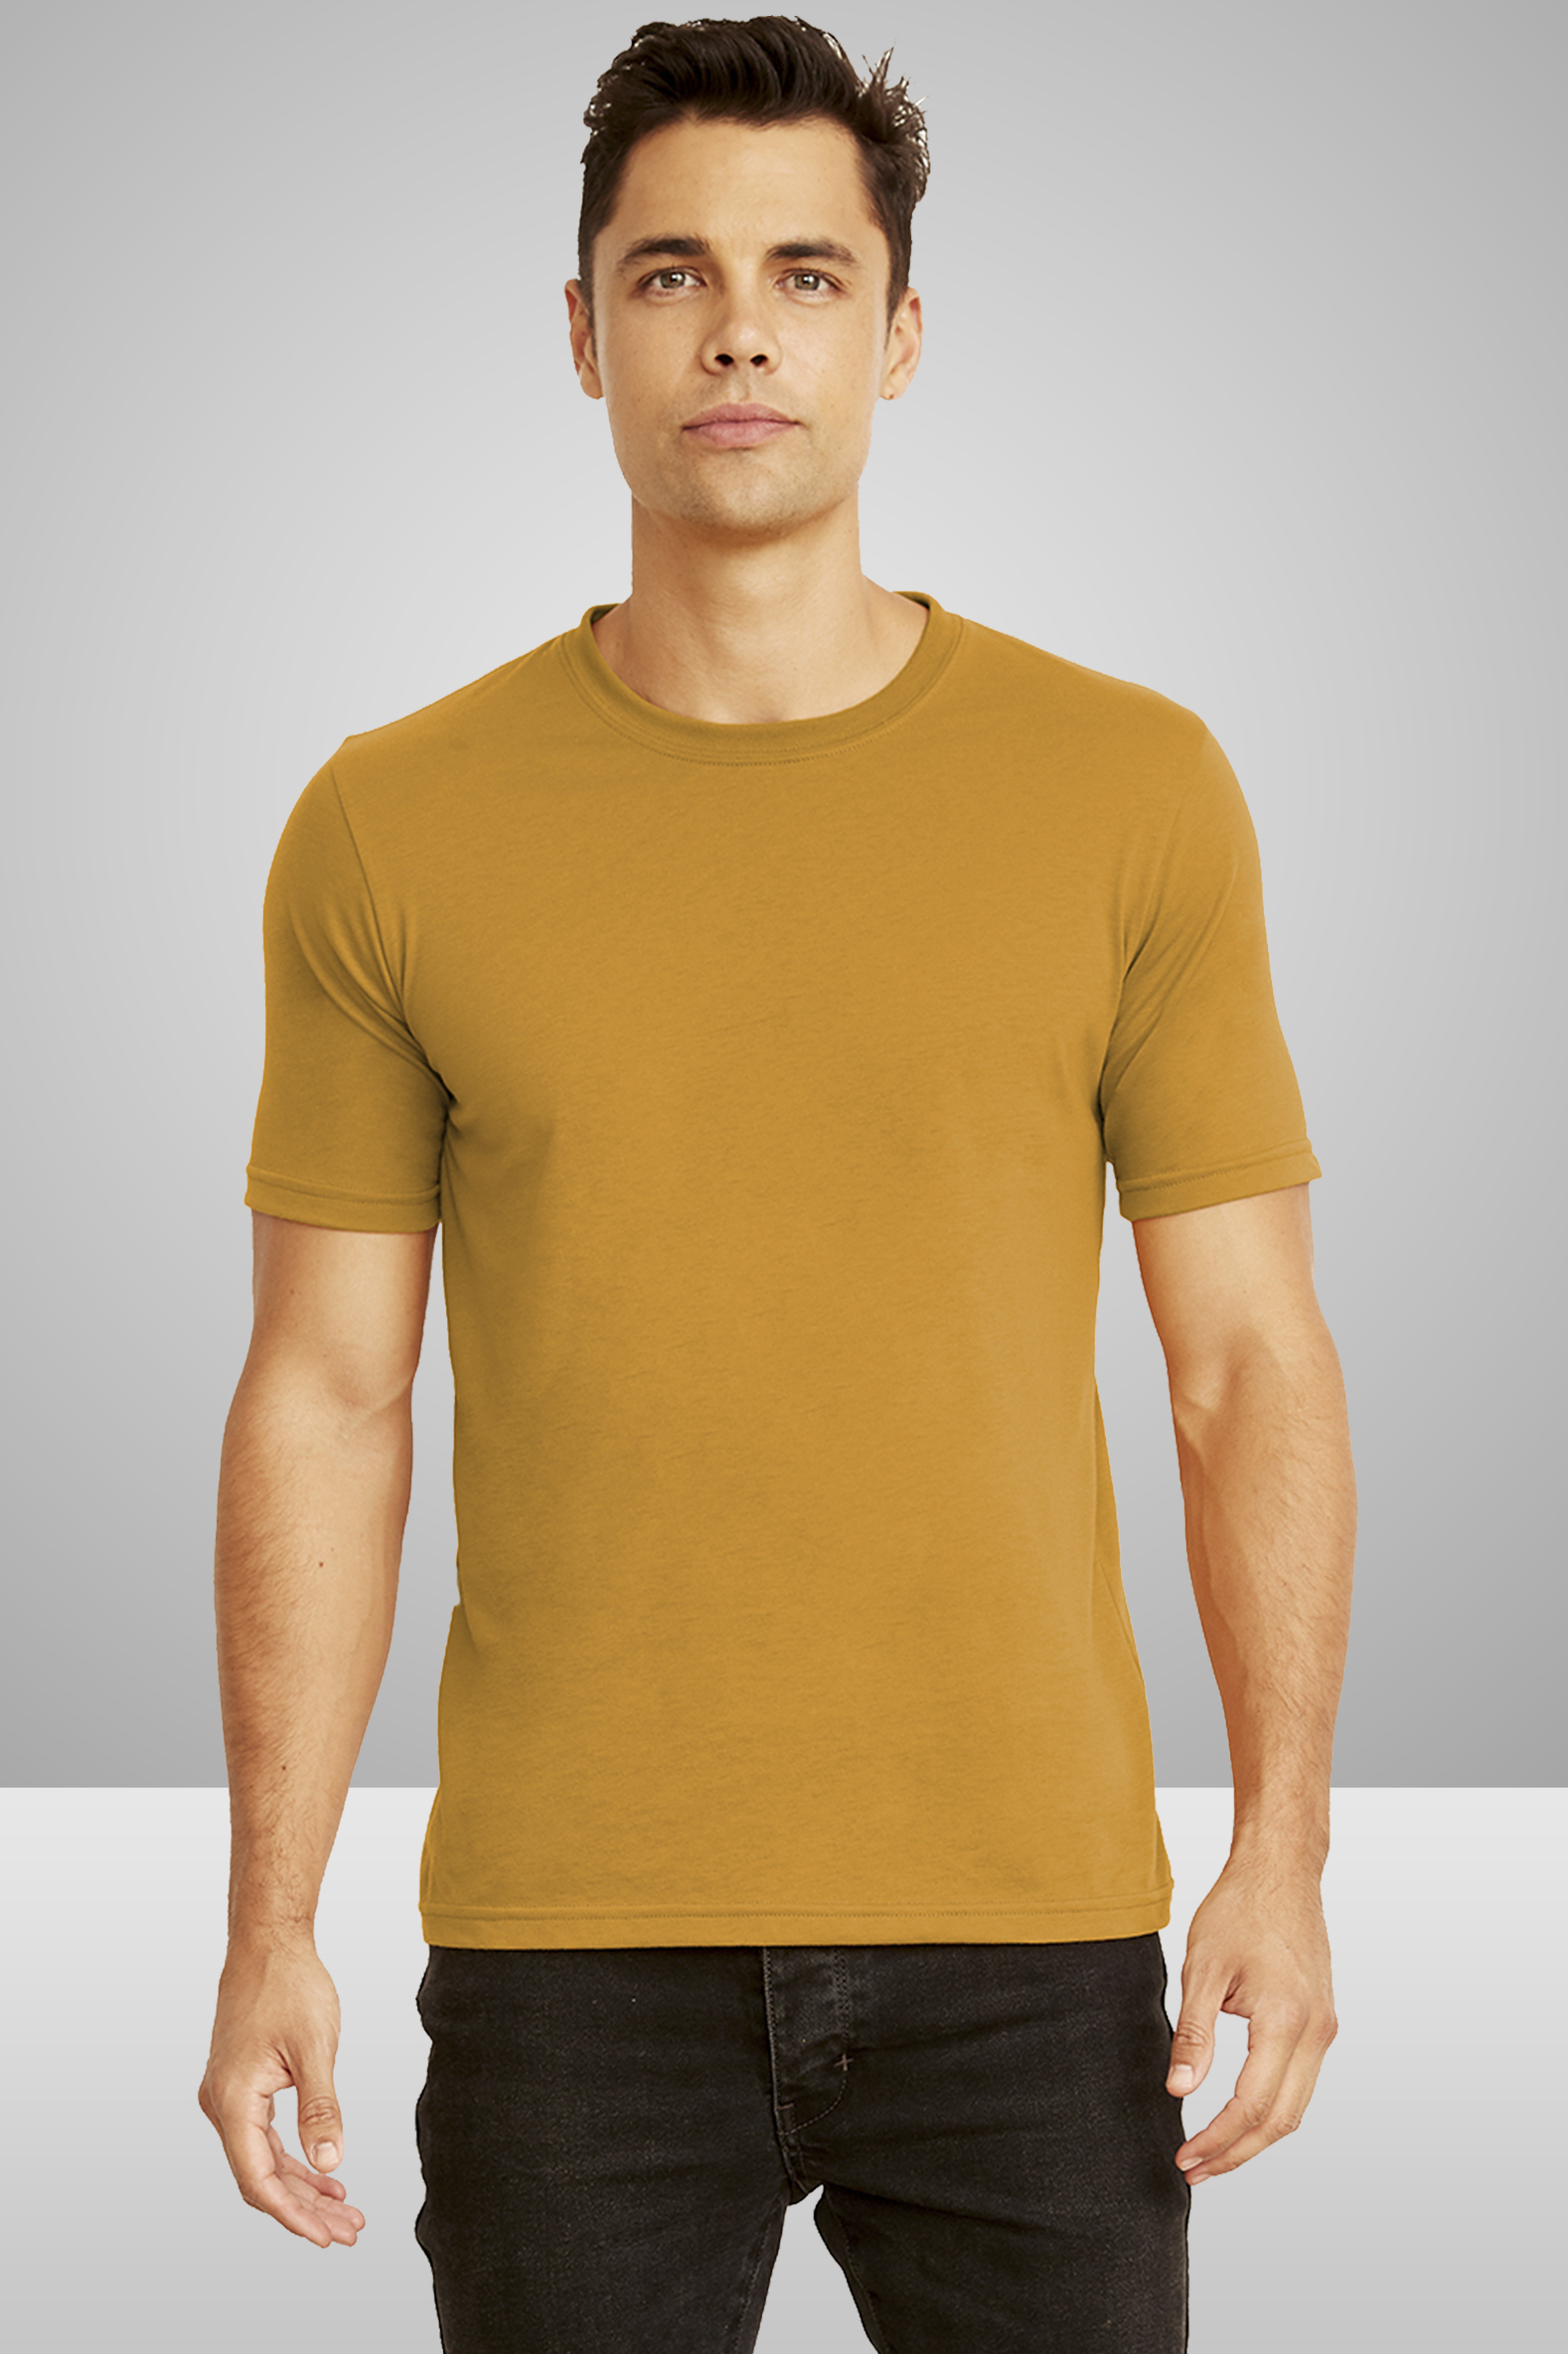 Next Level Soft T-Shirt    $9.80 each for 25 items  one color front or back